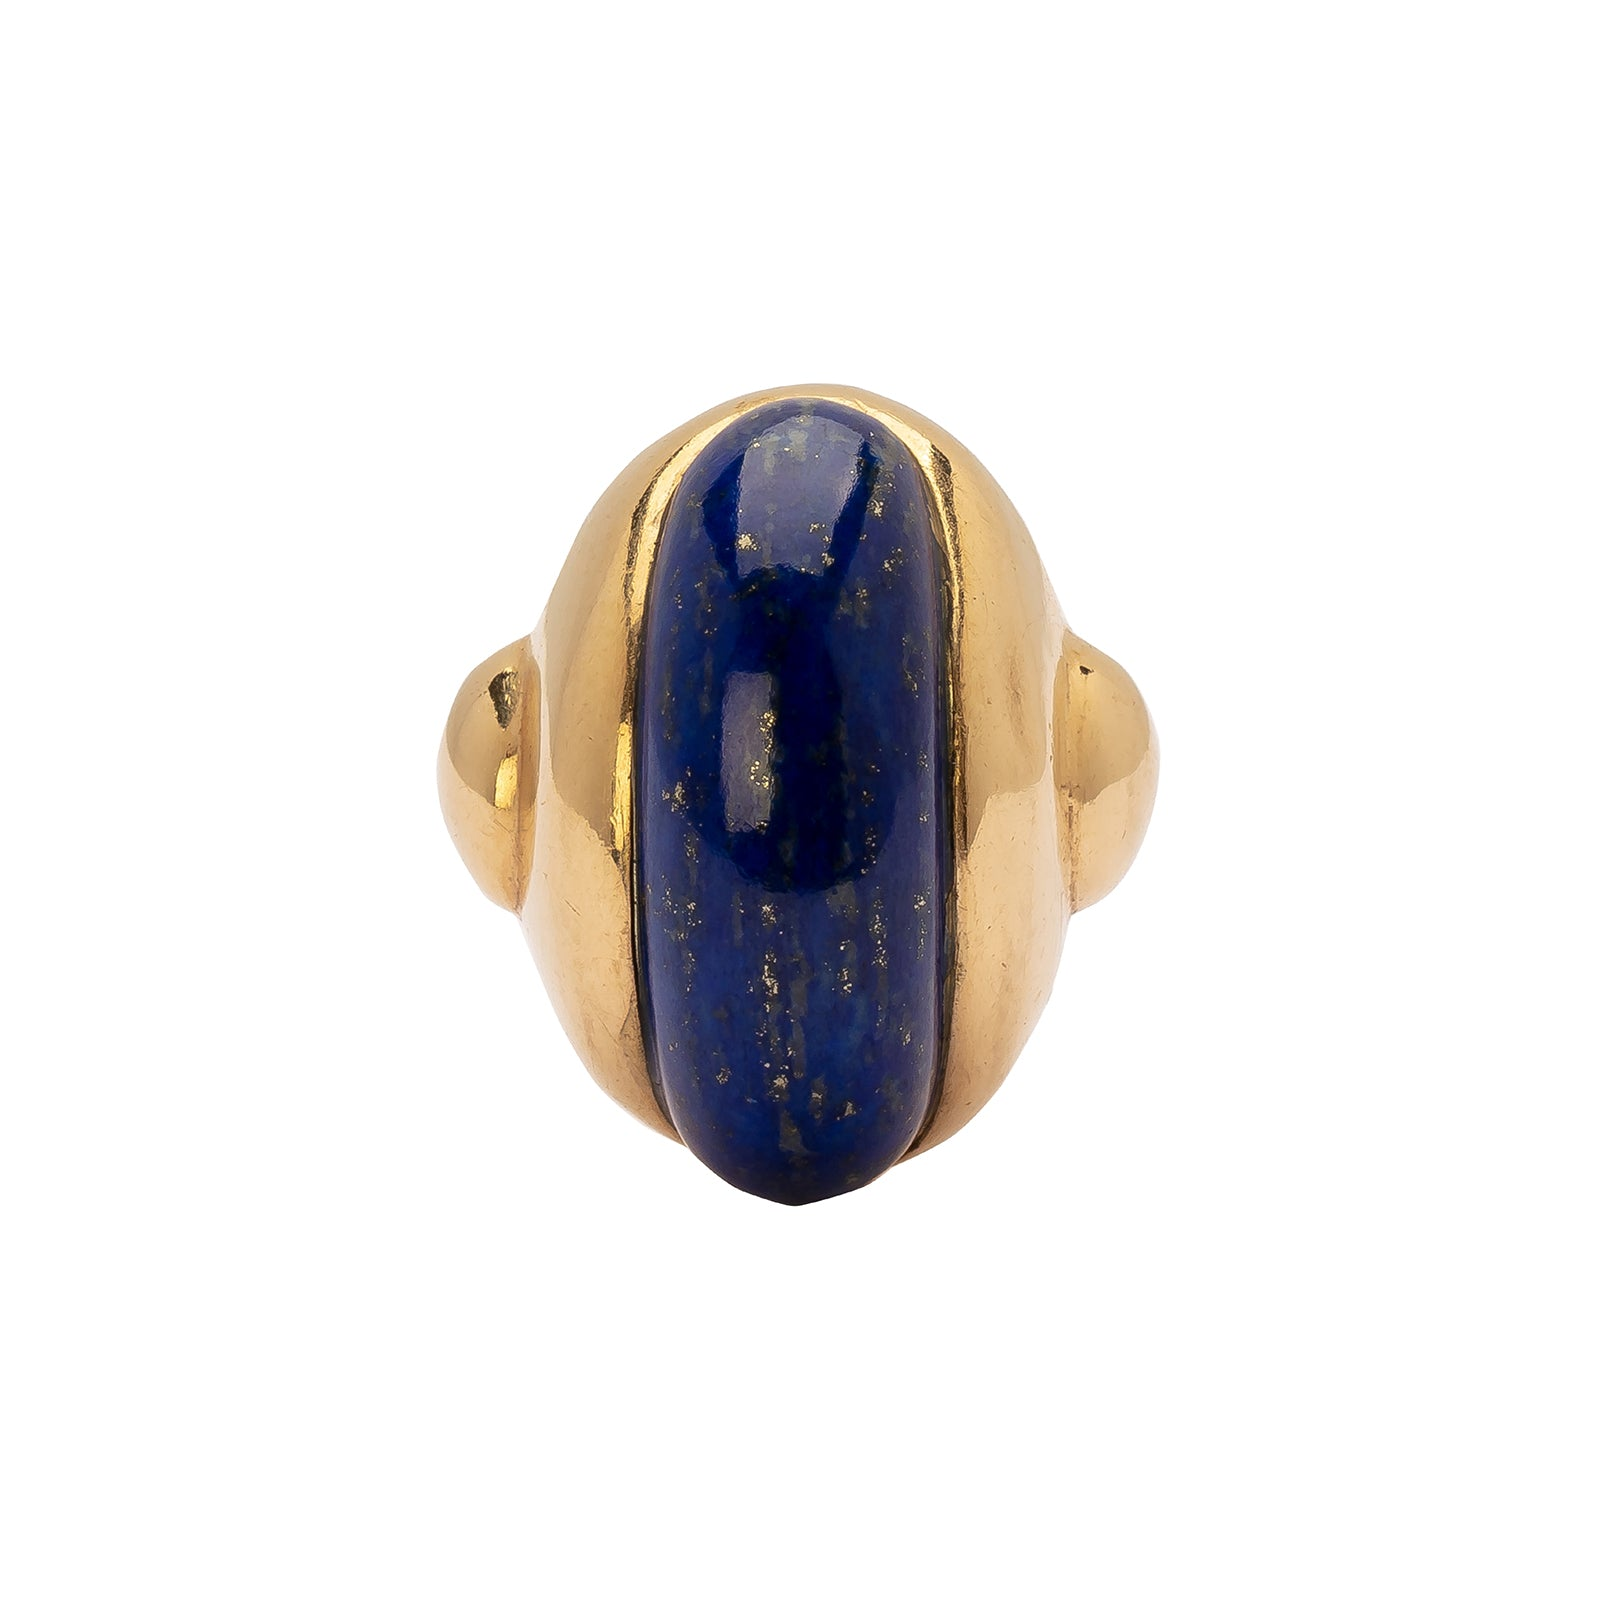 Antique & Vintage Jewelry Carved Lapis Dome Ring - Rings - Broken English Jewelry